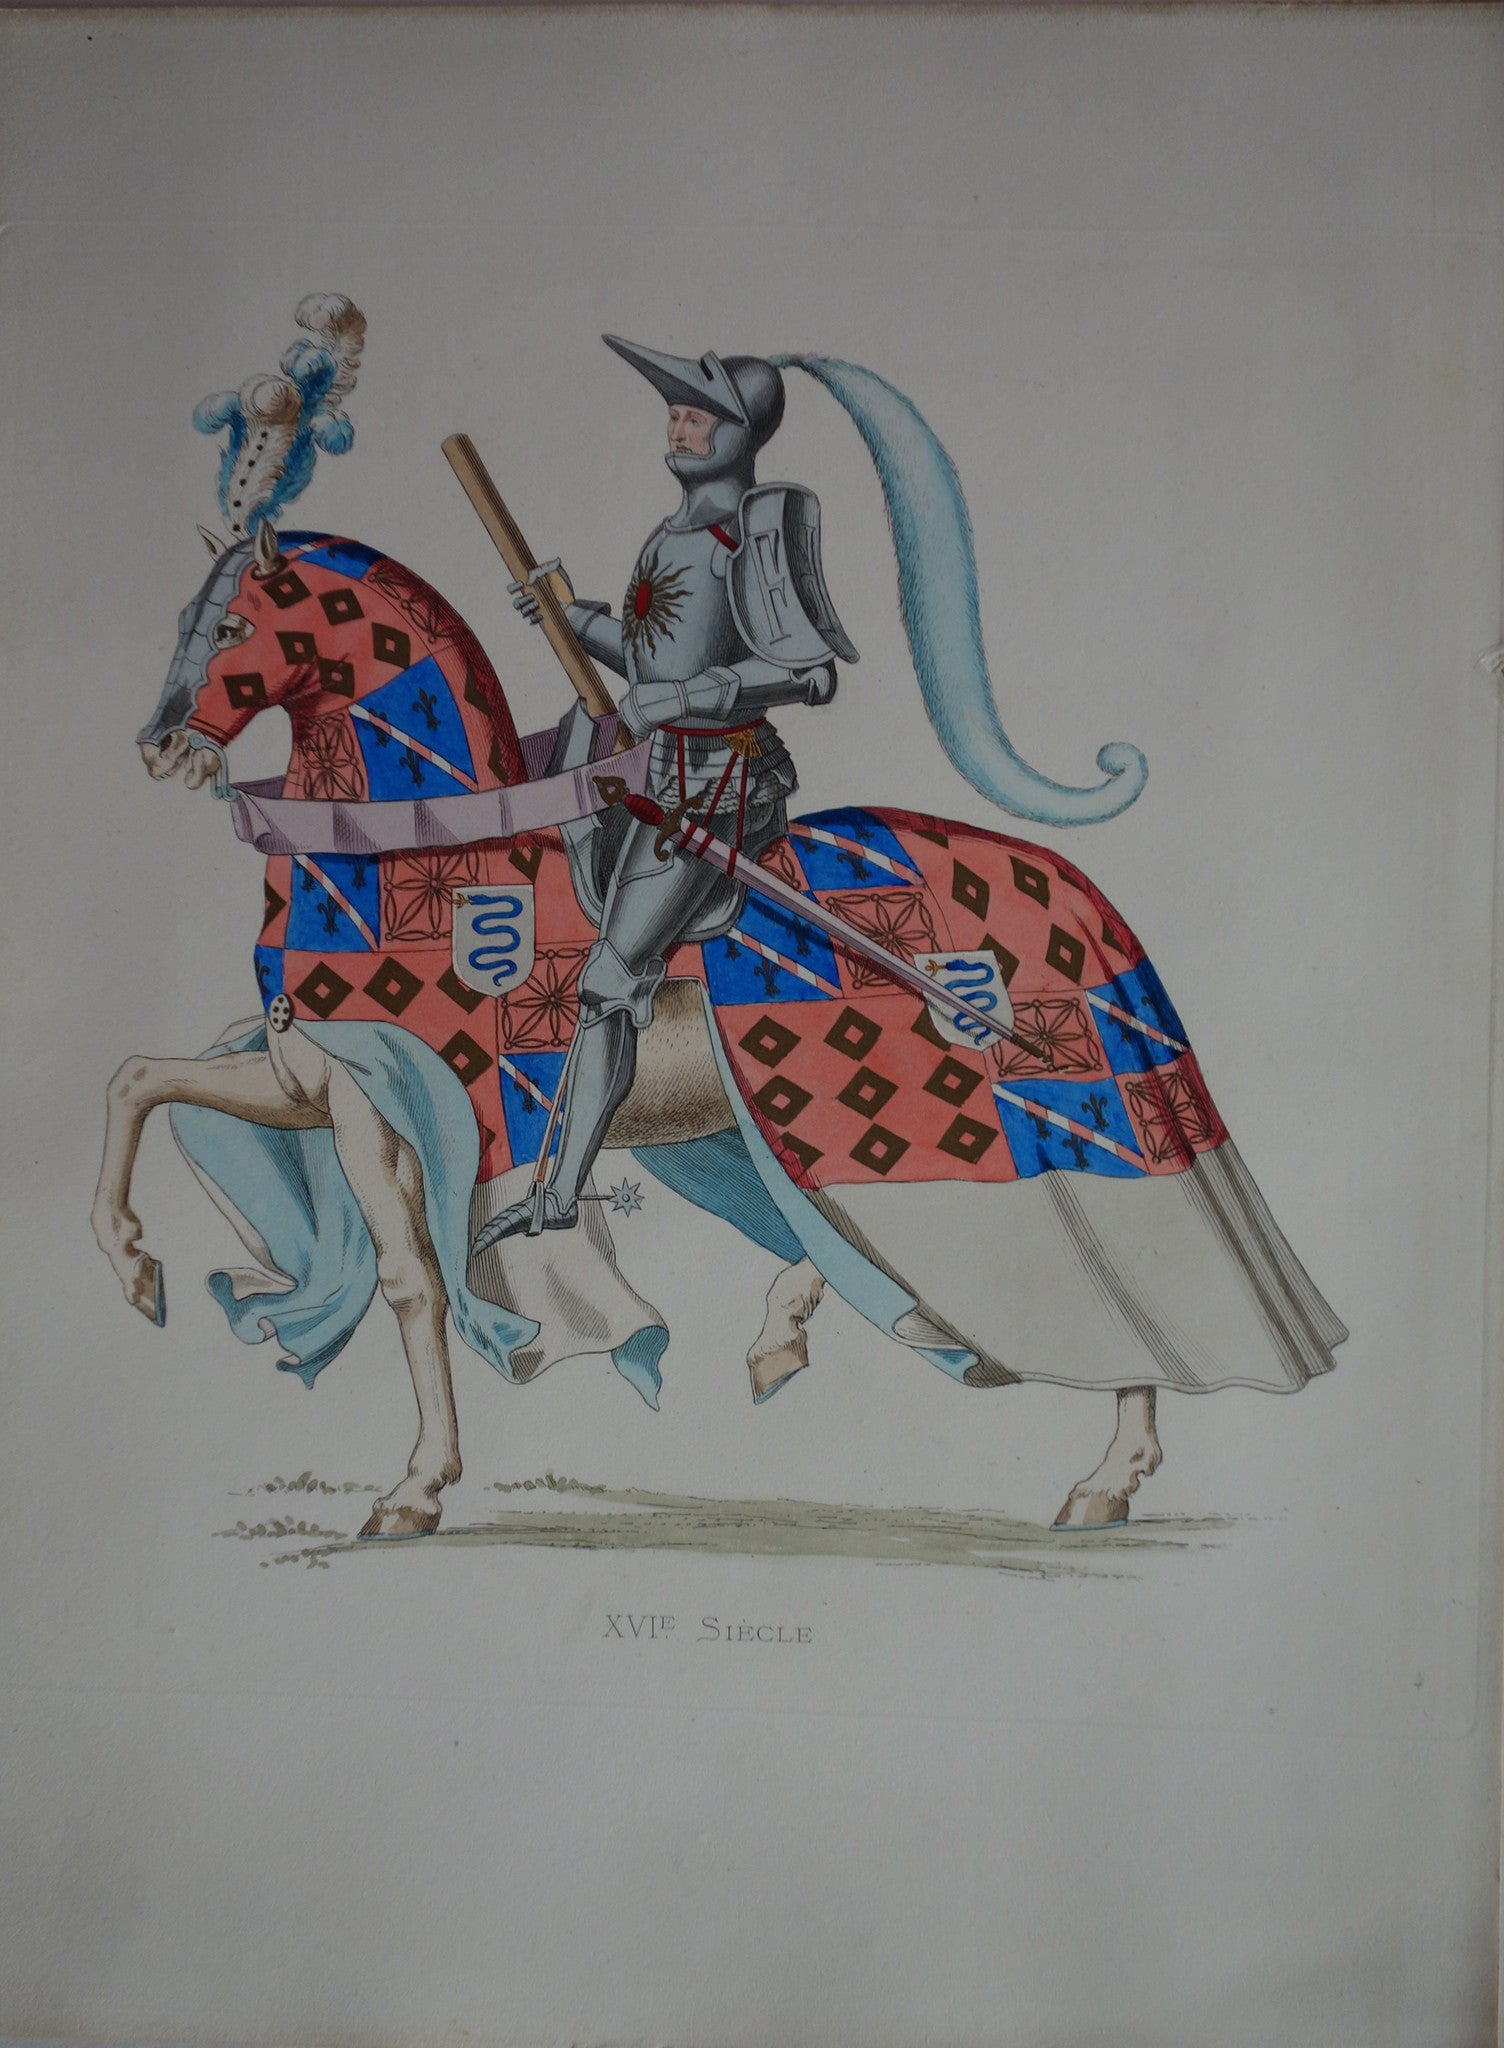 XVI Siecle On a White Horse